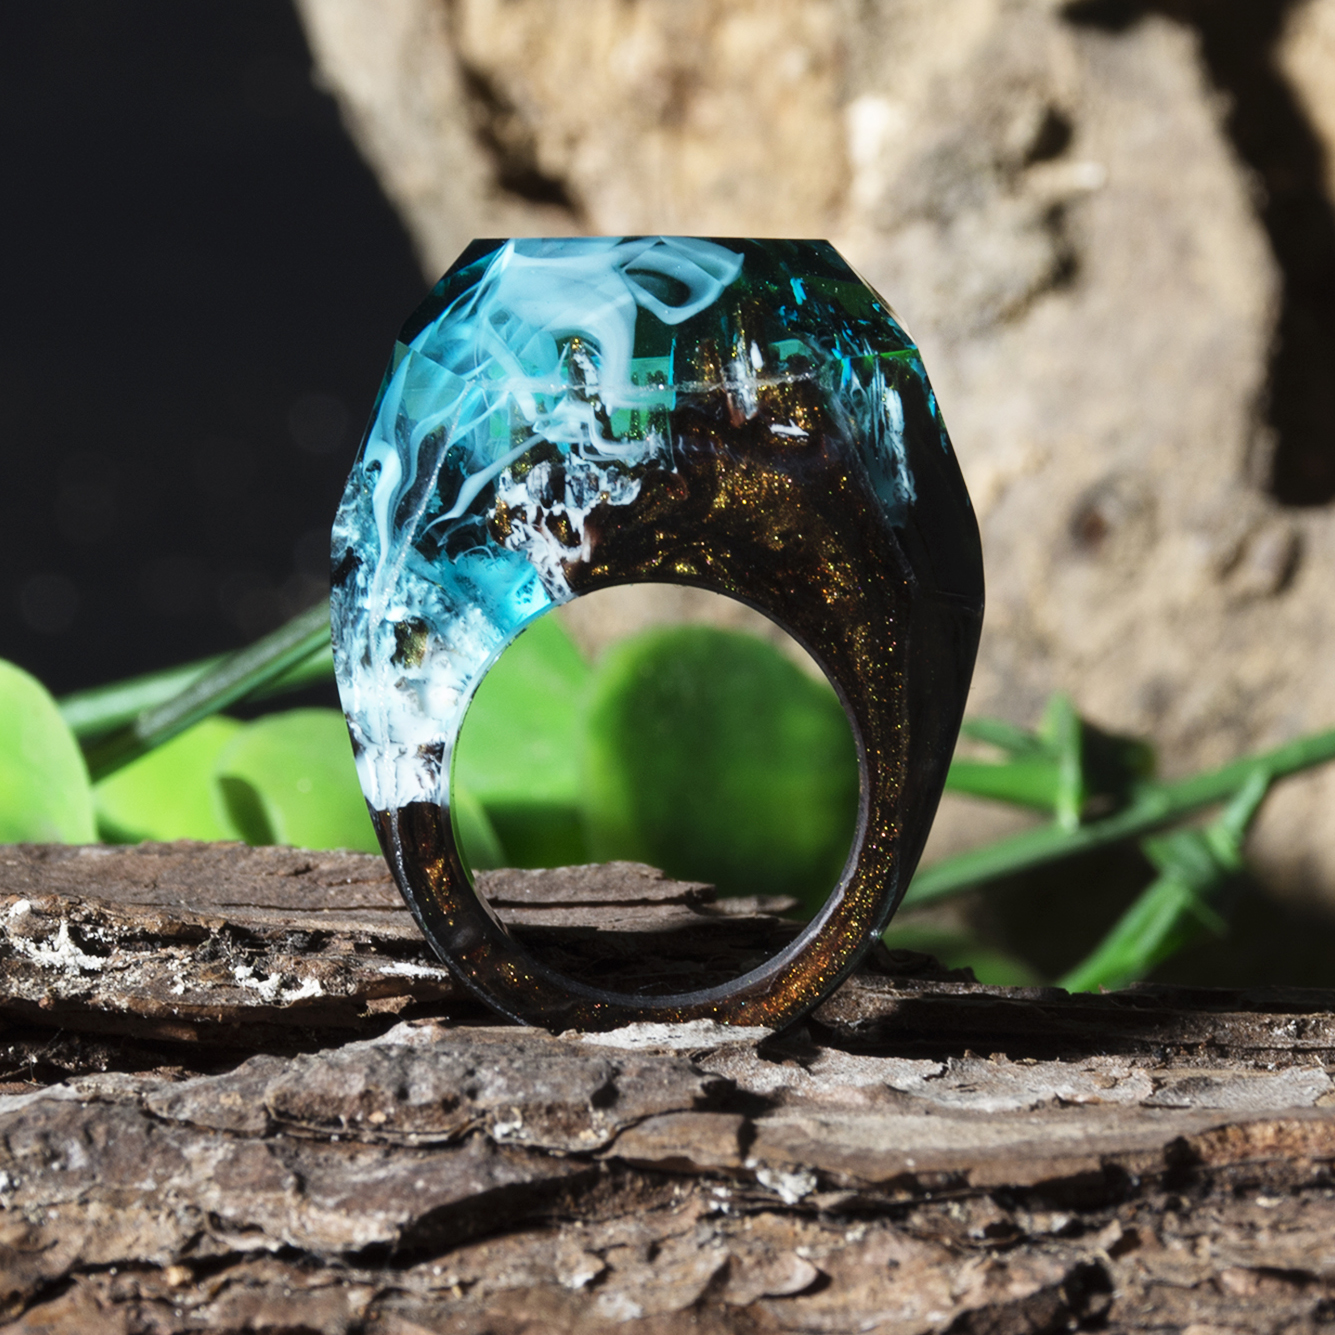 Resin Ring Epoxy-Jewelry Dried-Flowers Landscape Tiny In-The-Dark Best-Gift Eco The-Secret-Of-The-Magical-World title=